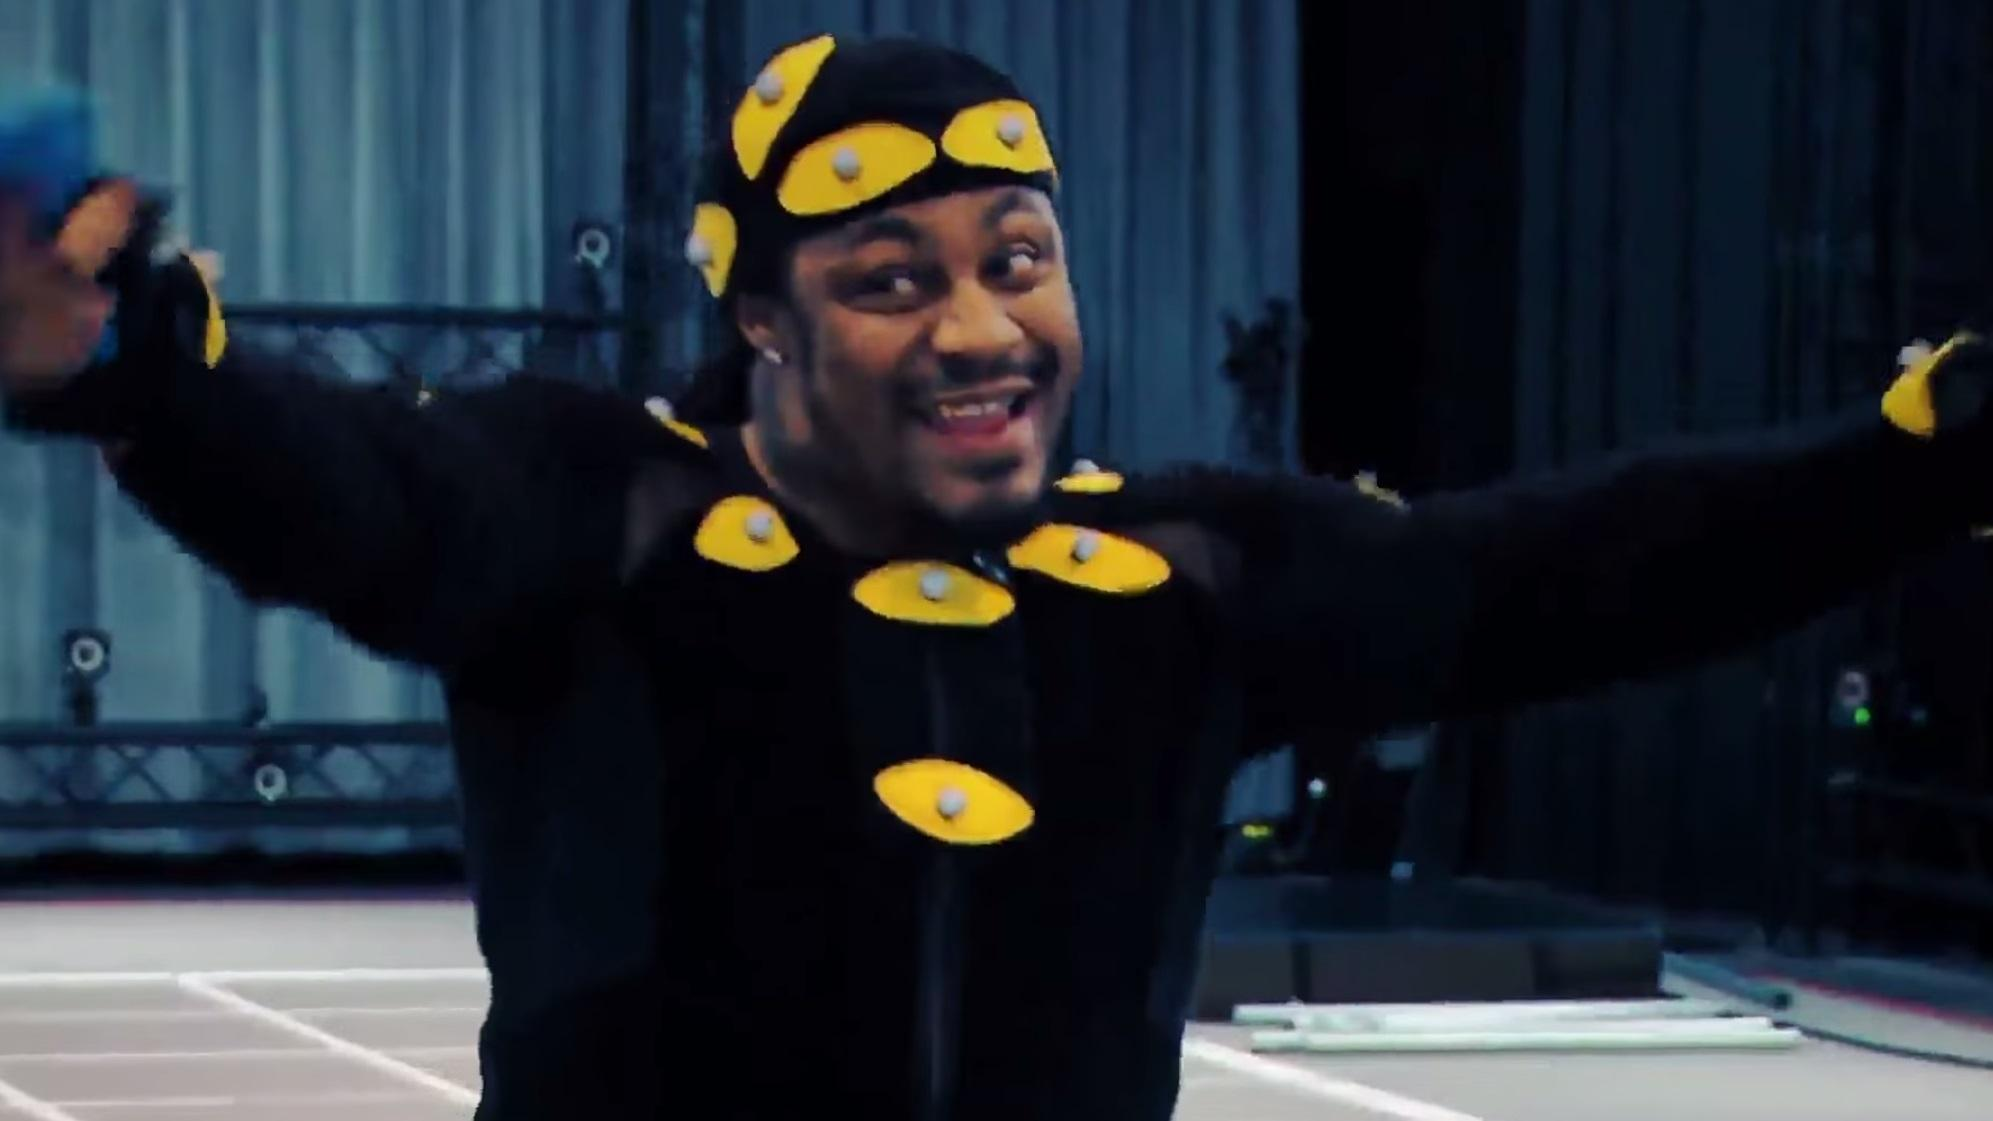 Conan looks at Marshawn Lynch in the new Call of Duty video game